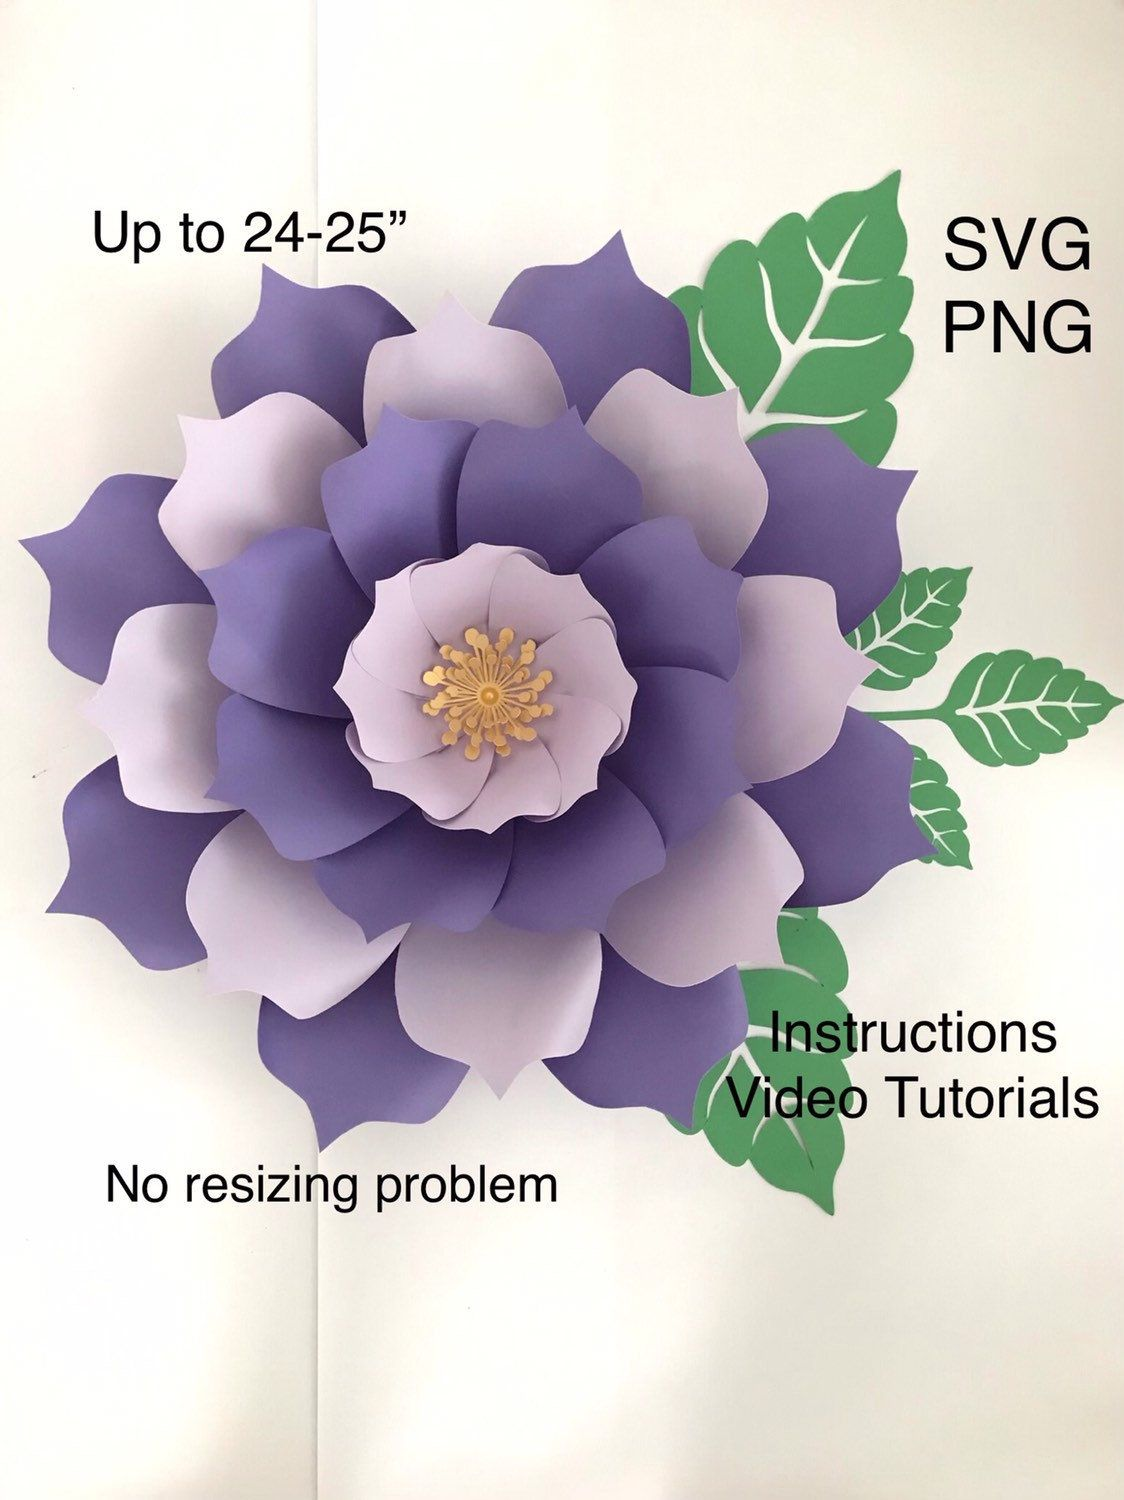 3d Paper Flowers Template Svg Png For Wall Decor Flower Svg Files